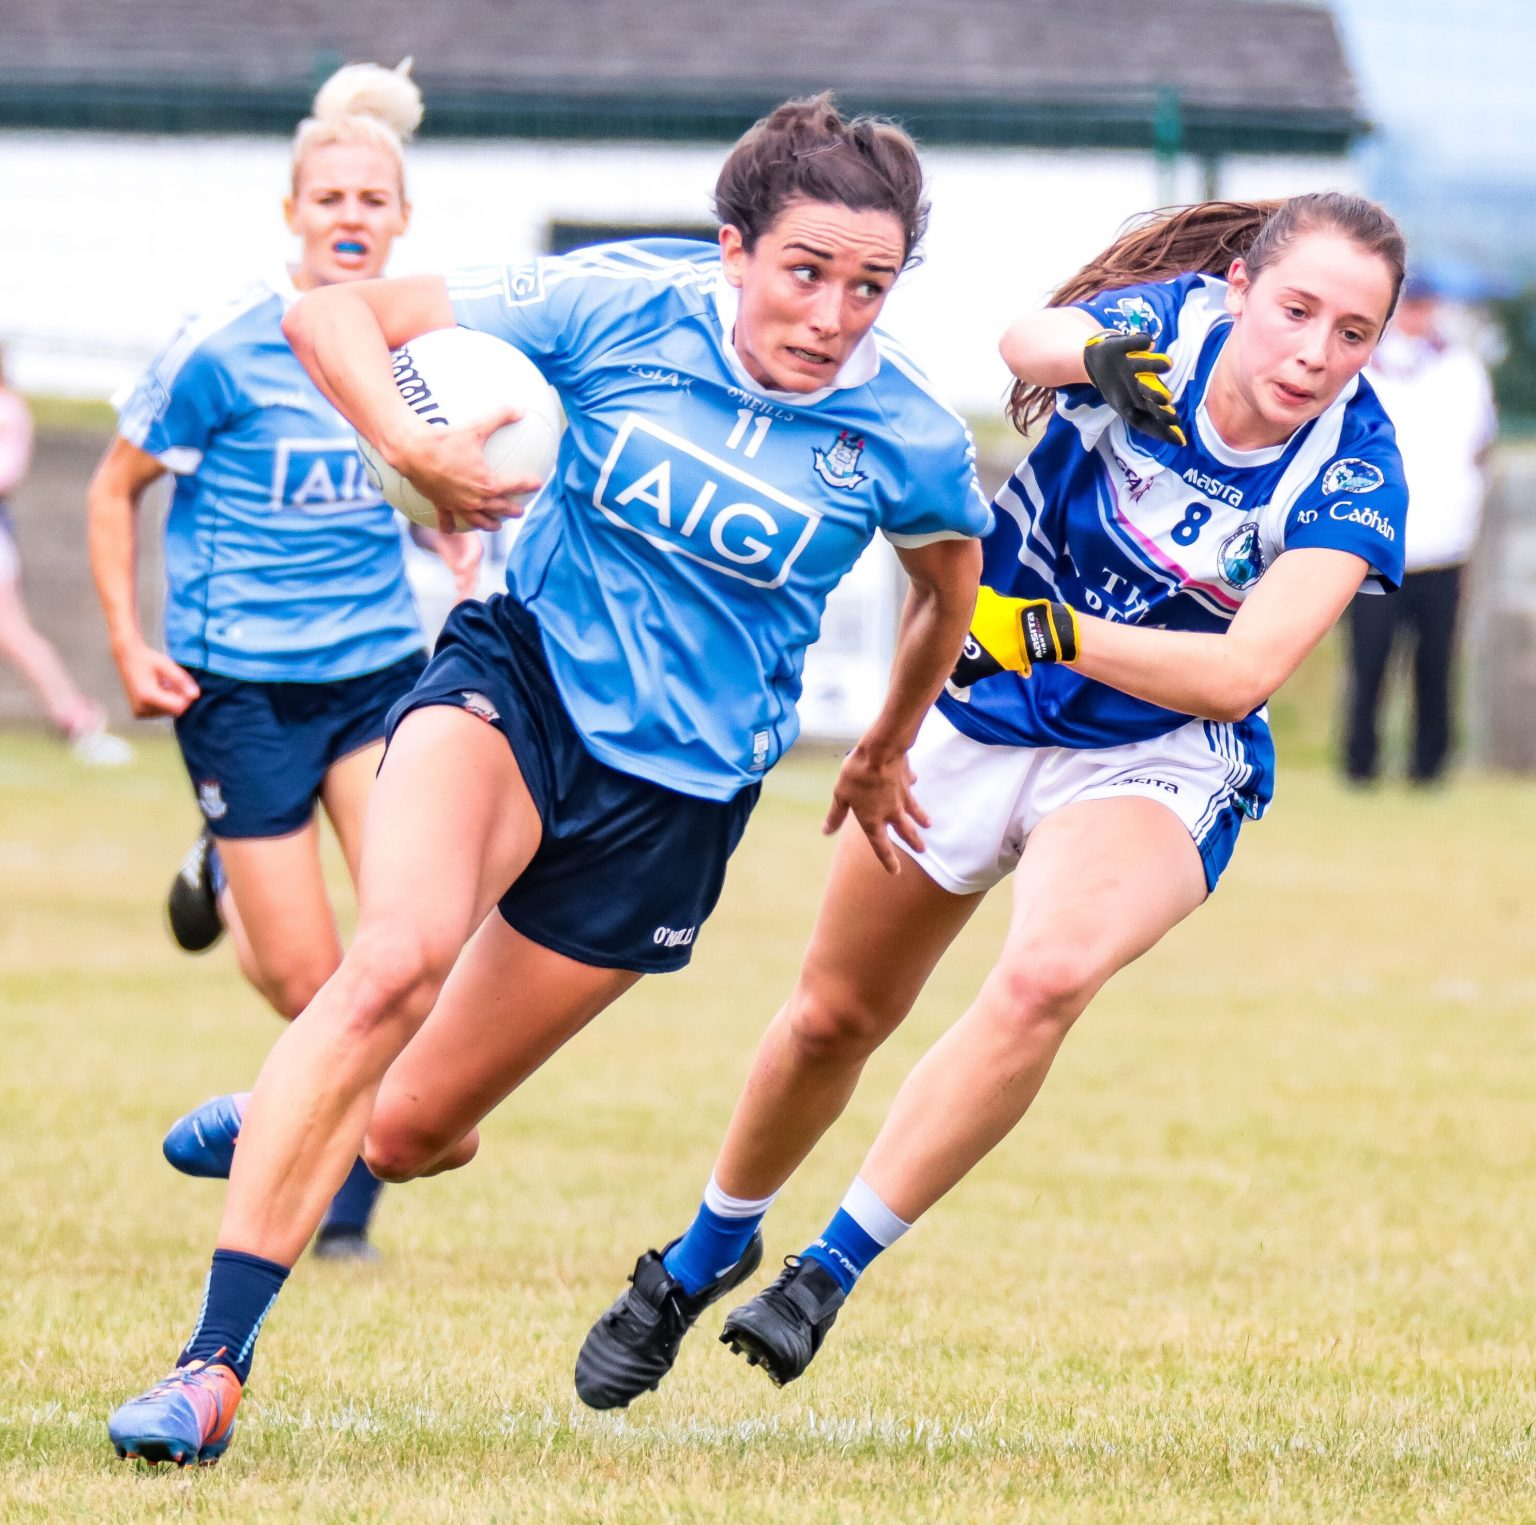 Dublin Ladies Footballer Niamh McEvoy in a sky blue jersey one of the goal scorers in yesterday's win over Cavan, Niamh is seen breaking away with the ball from a Cavan player in a dark blue jersey with white band